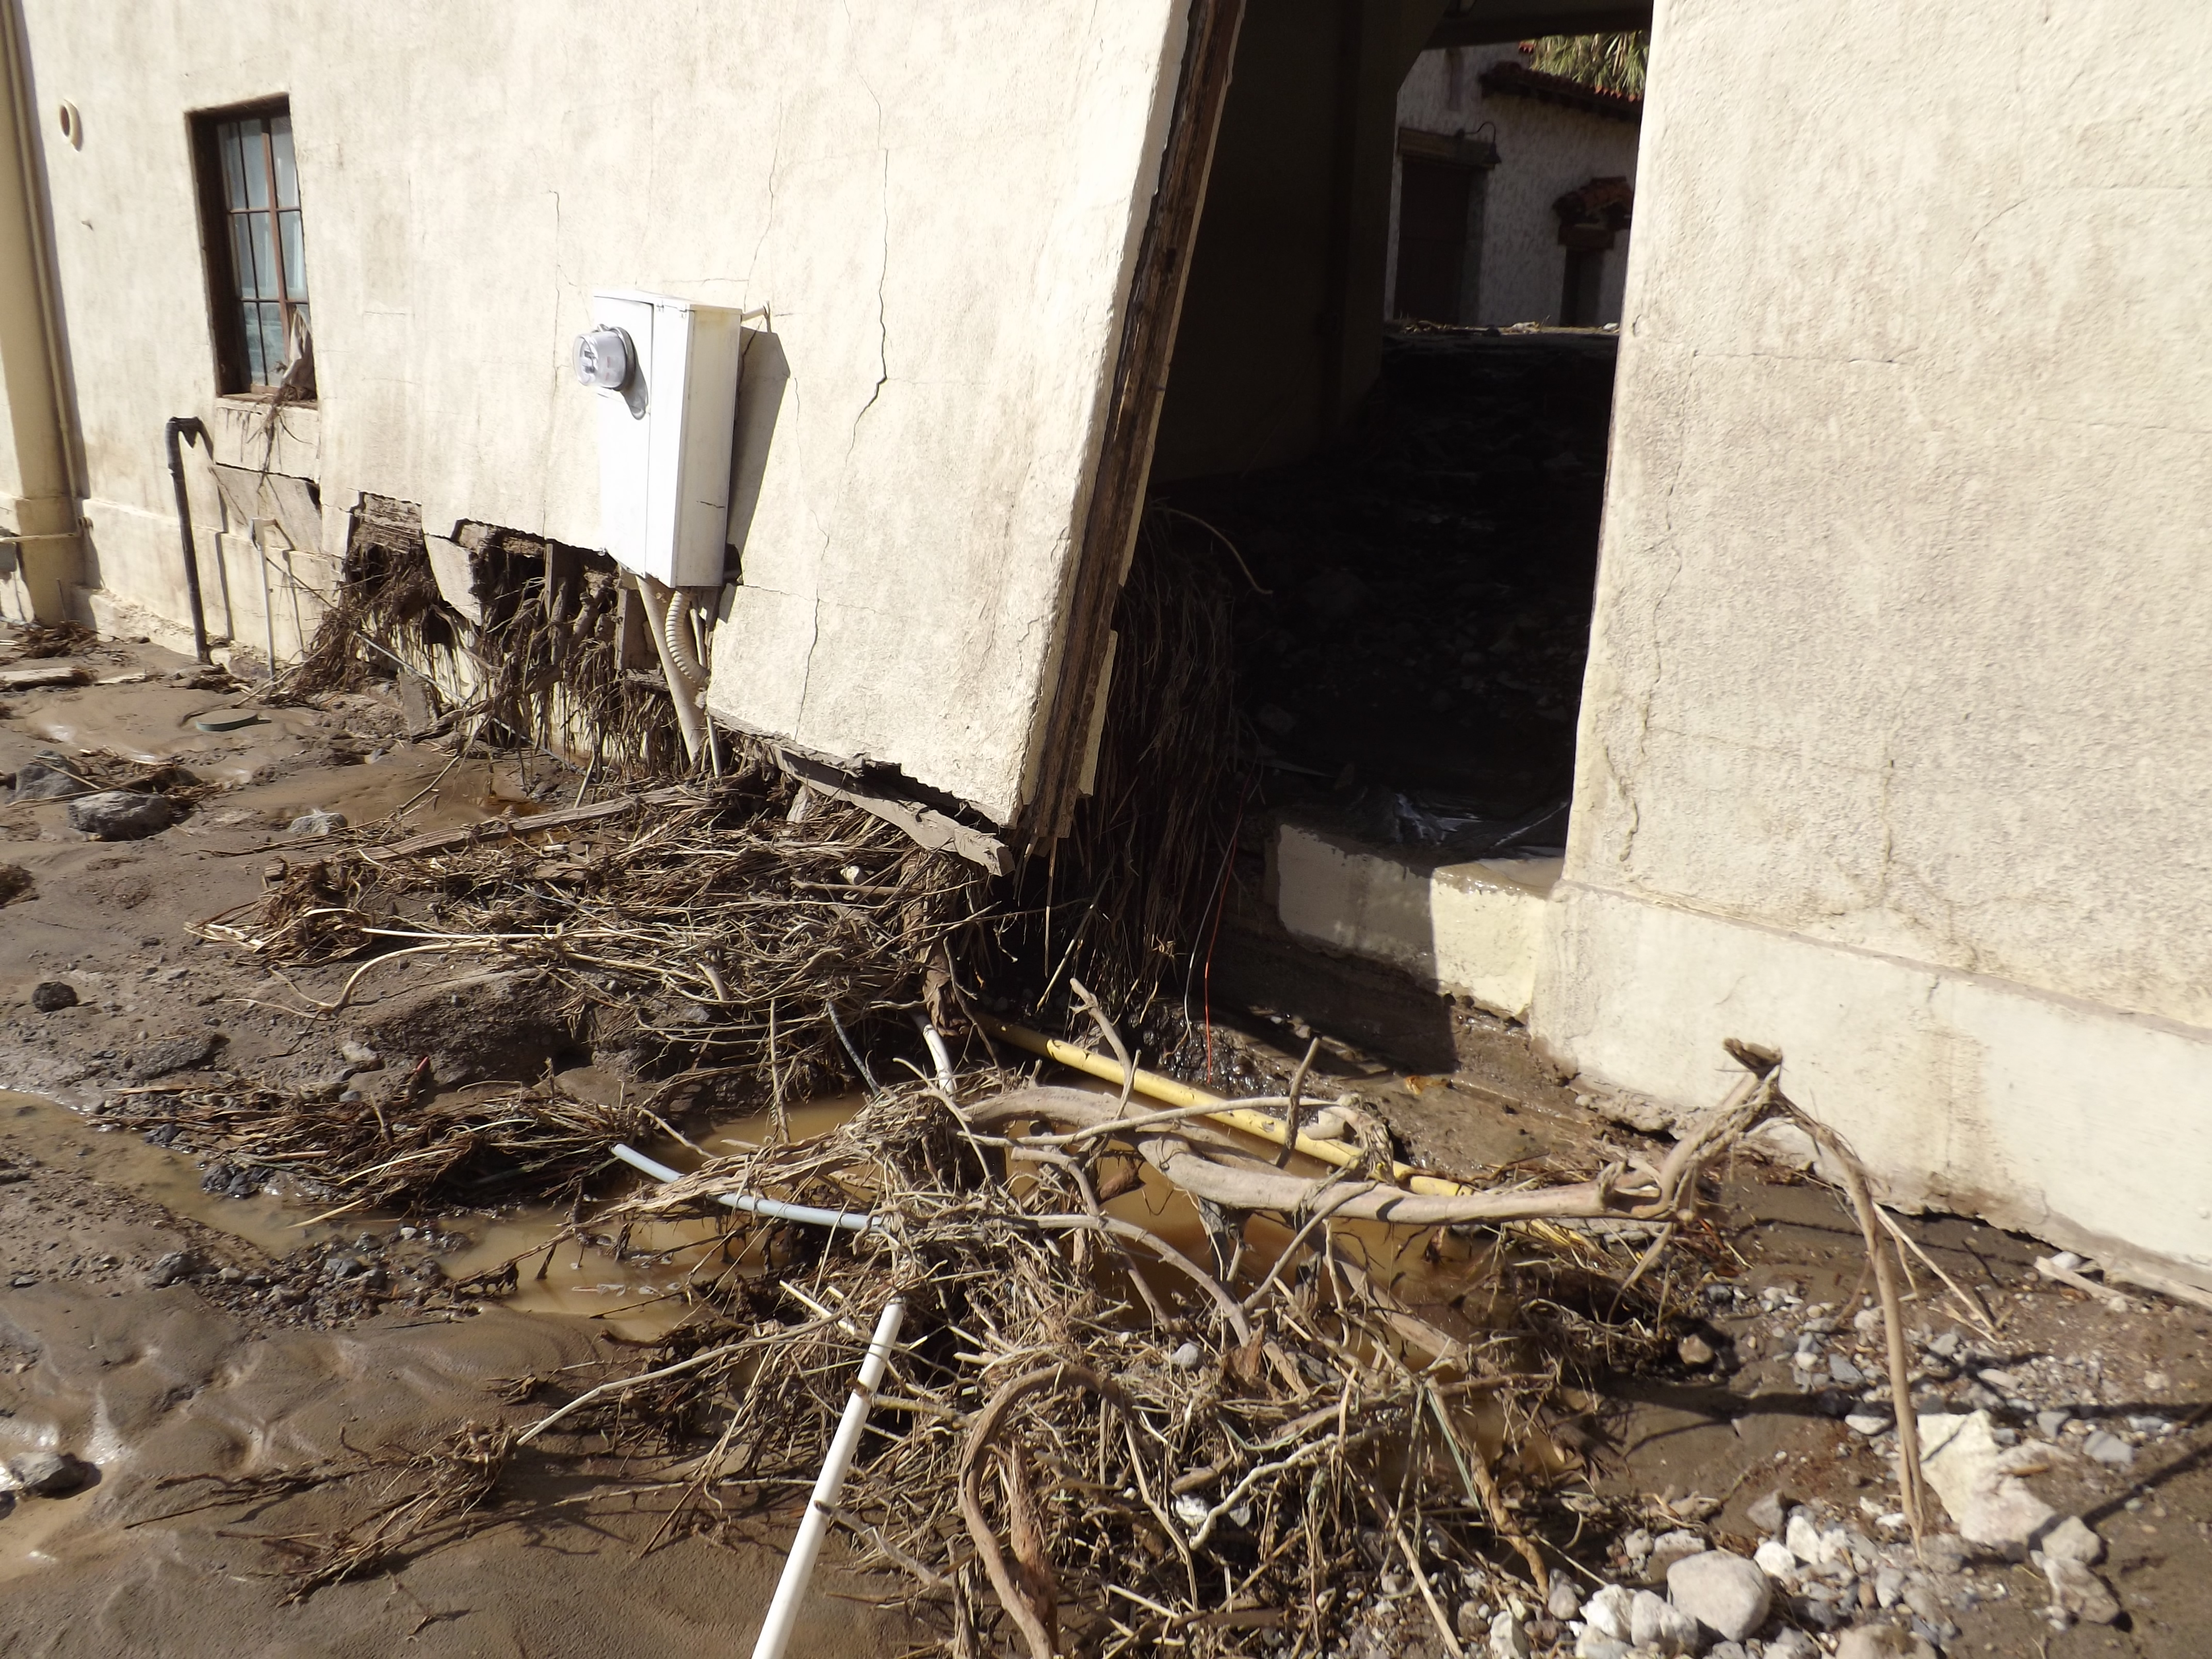 Rocks, soil and other flood debris litters the front of a long, damaged building.